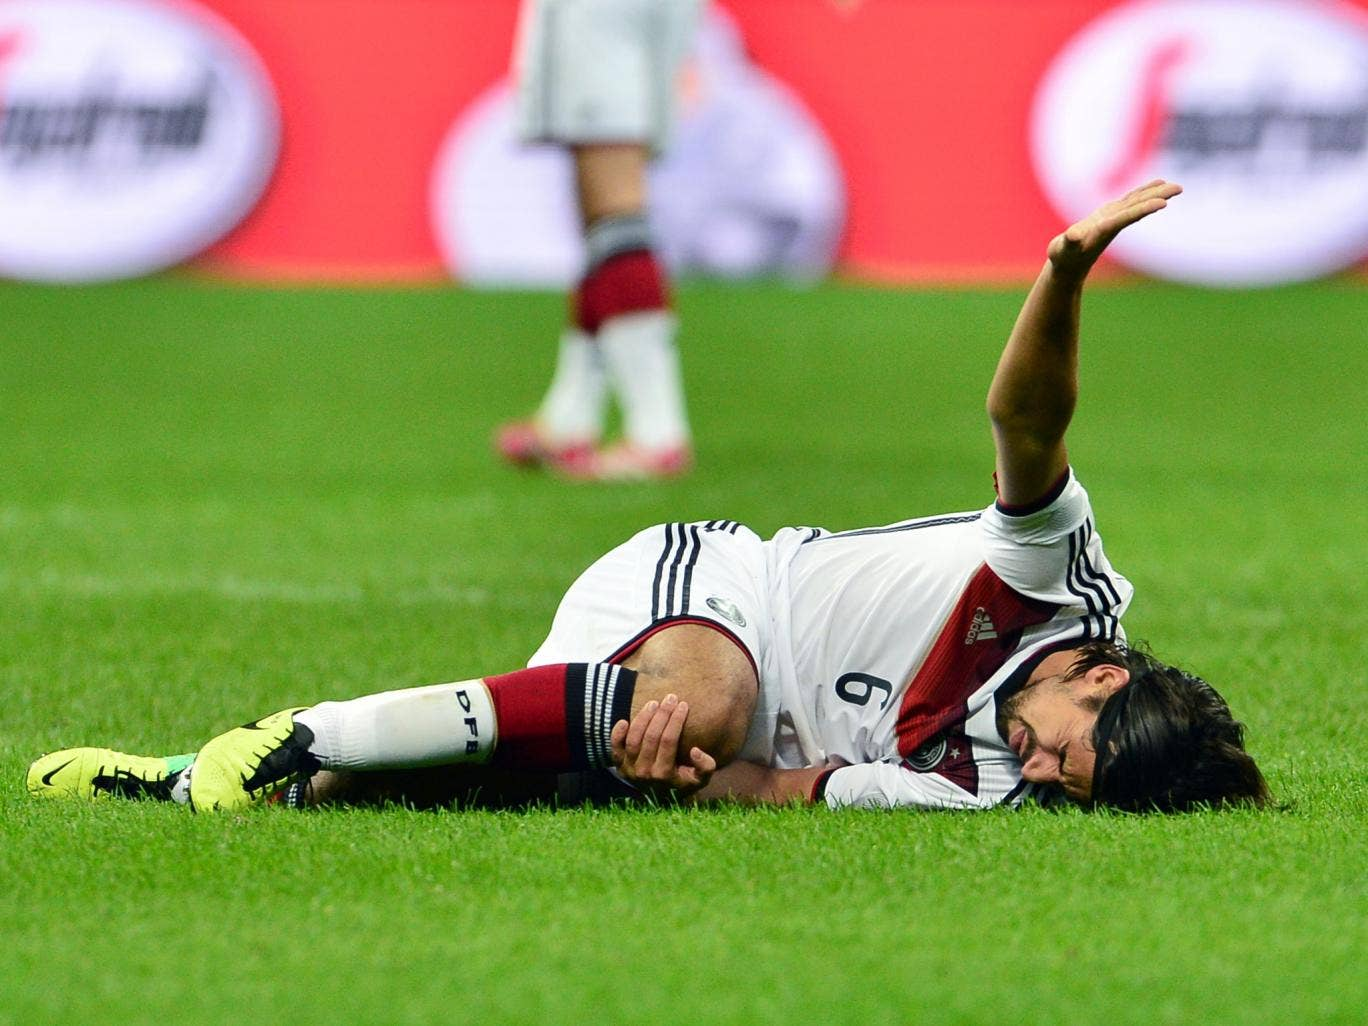 Germany midfielder Sami Khedira could face missing the World Cup after tearing his anterior cruciate ligament in the 1-1 draw with Italy